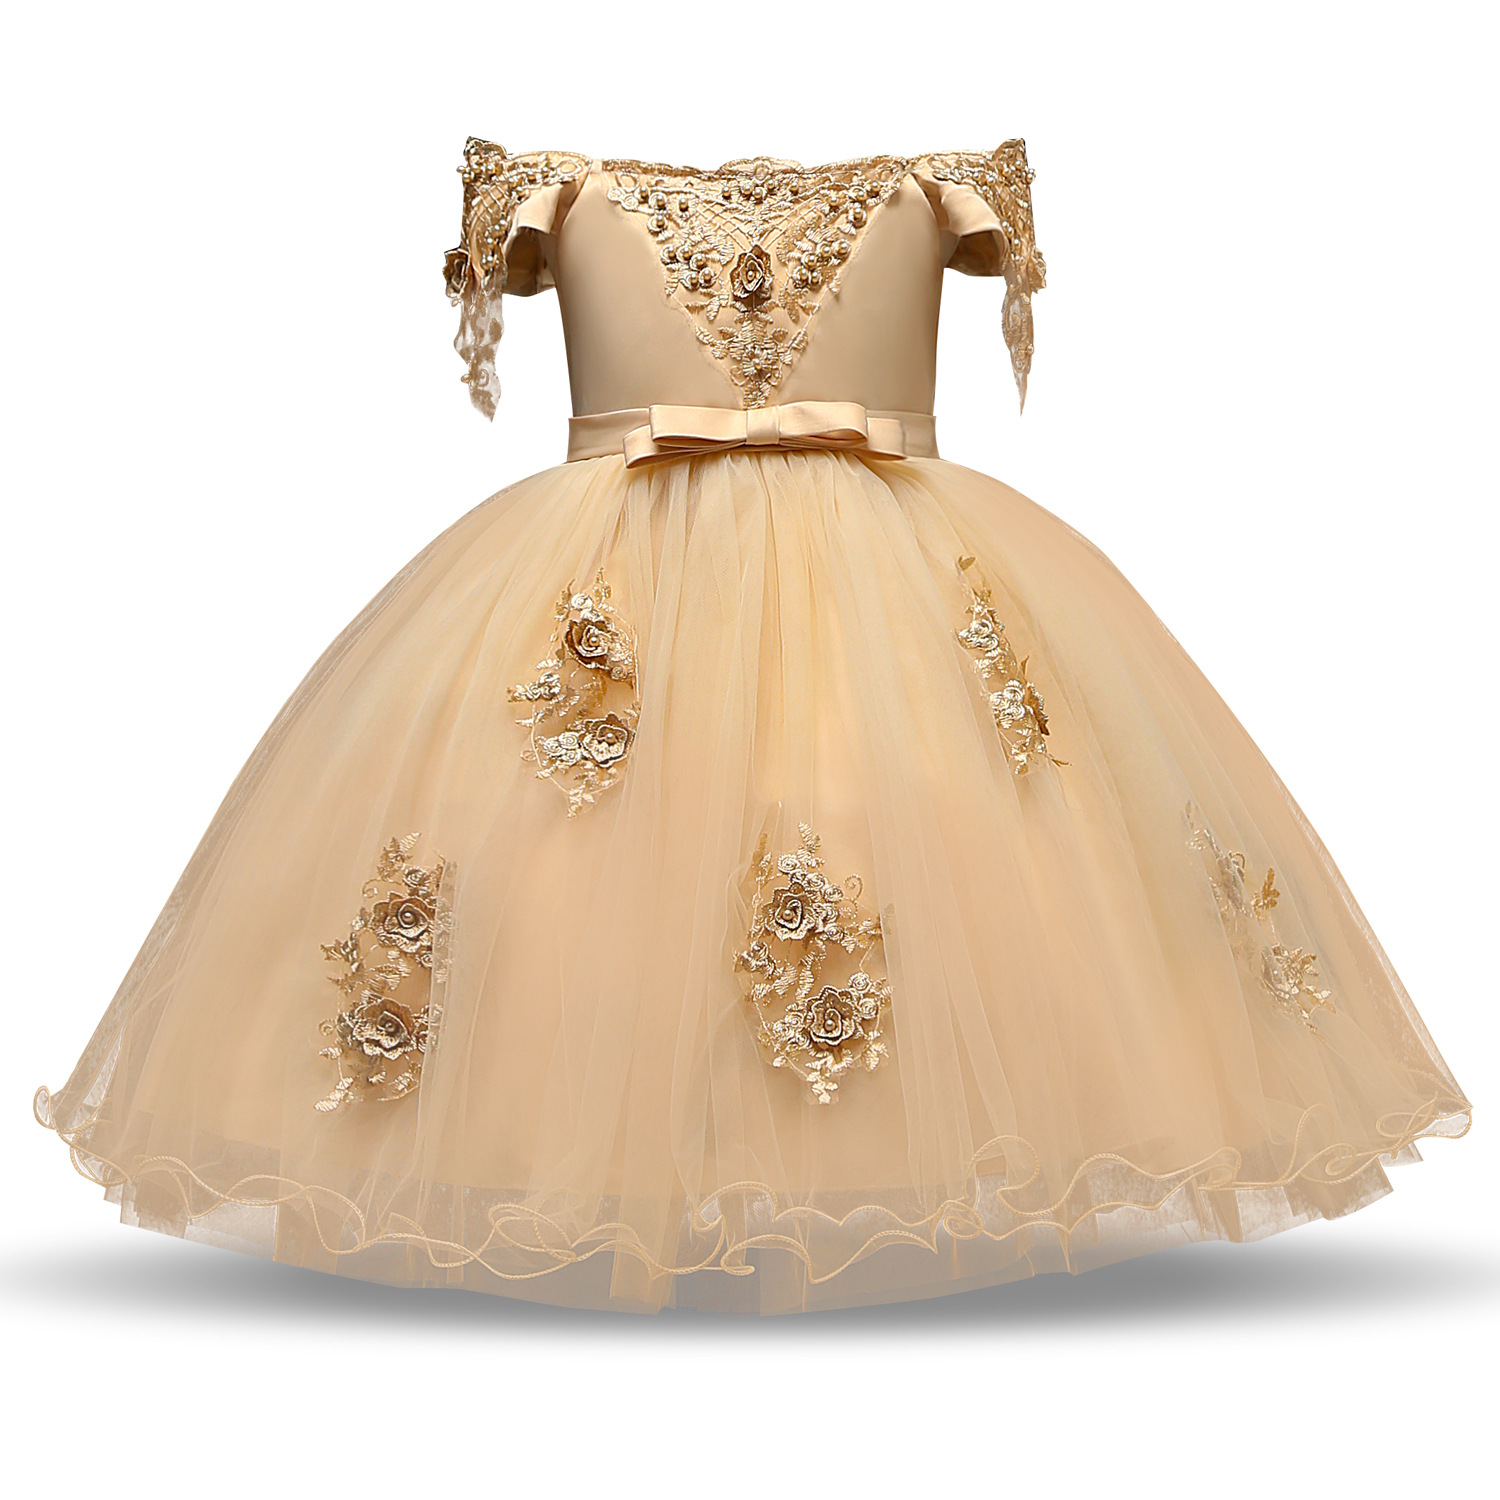 2019 New Style Children Wedding Dress Girls Beads Flower Off-Shoulder Formal Dress Bow Flower Boys/Flower Girls Puffy Princess S